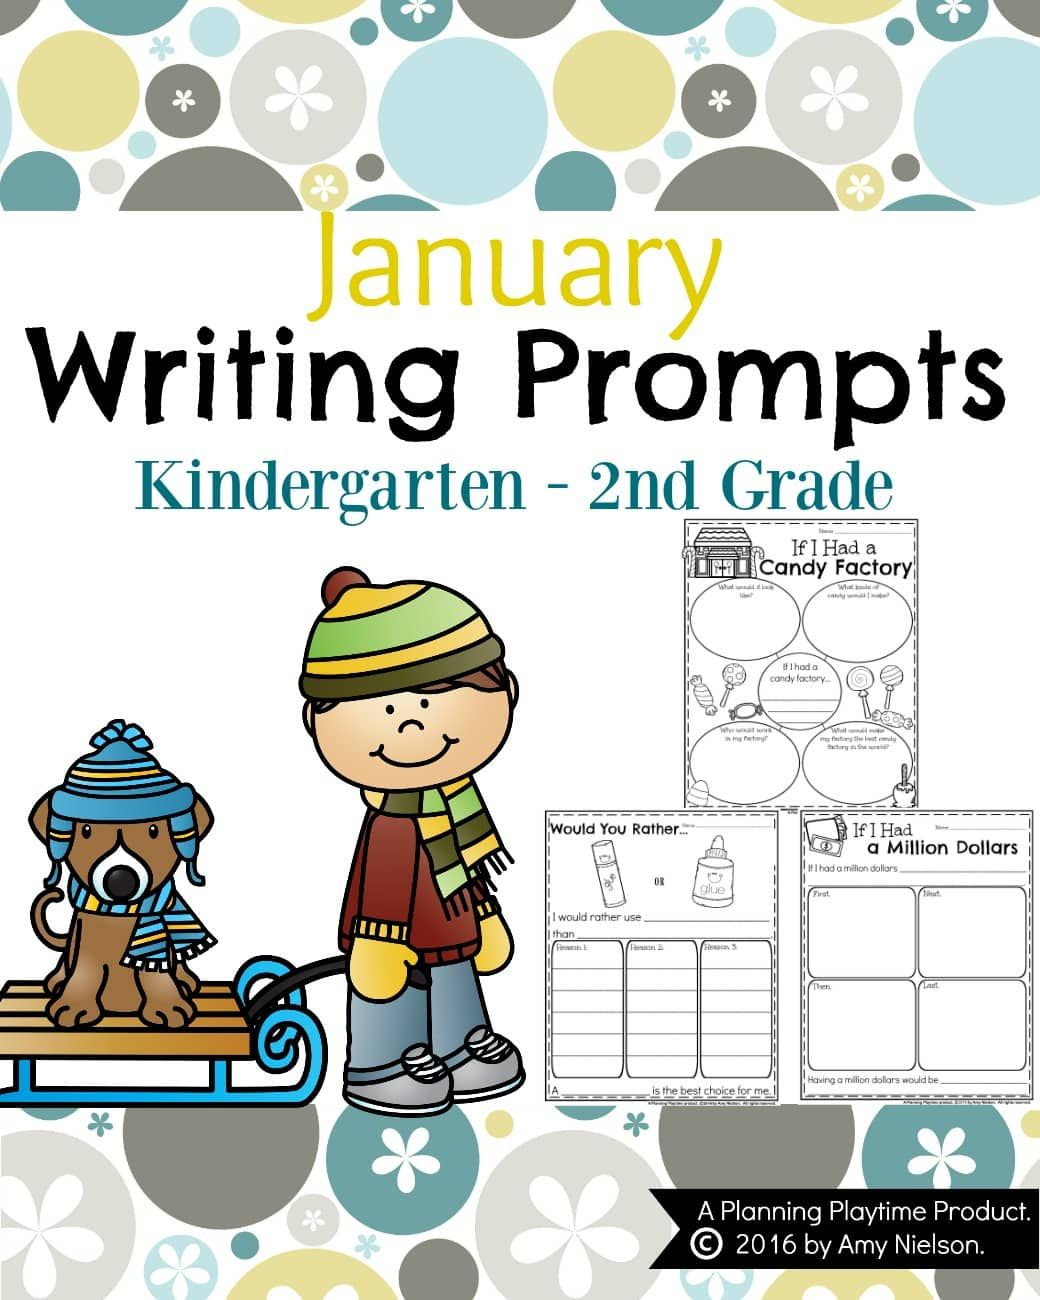 January Writing Prompts With Images